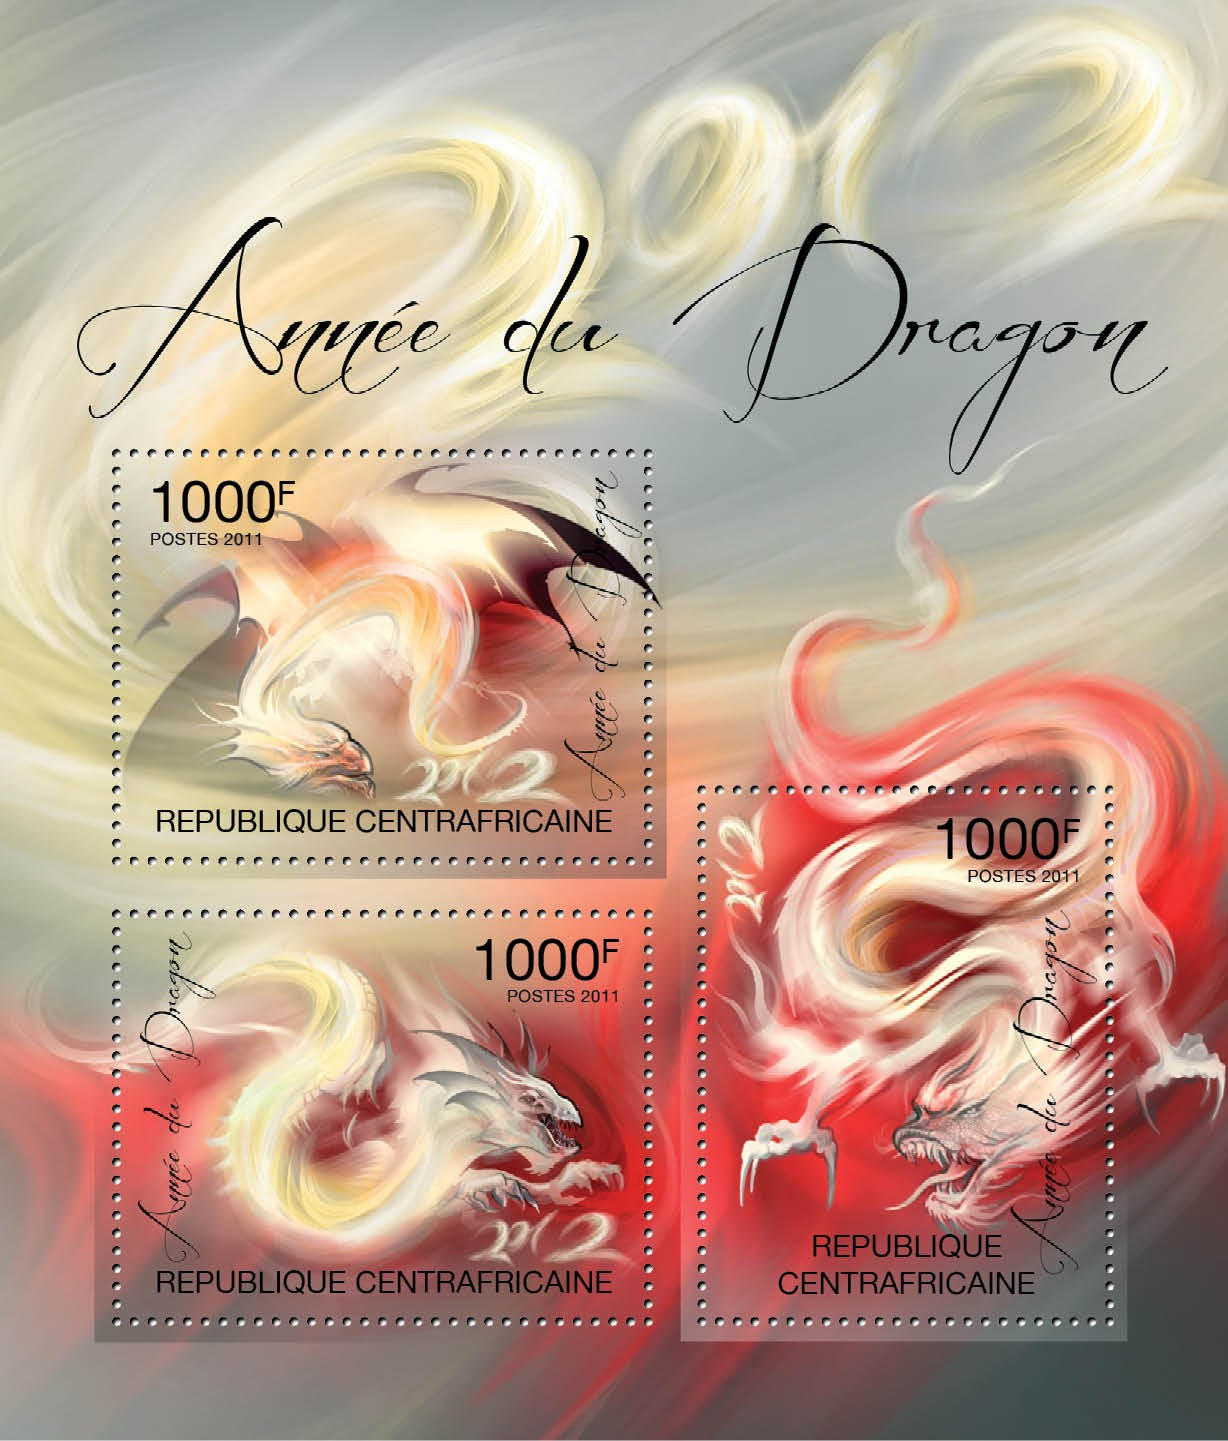 2012 Year of Dragon. - Issue of Central African republic postage stamps